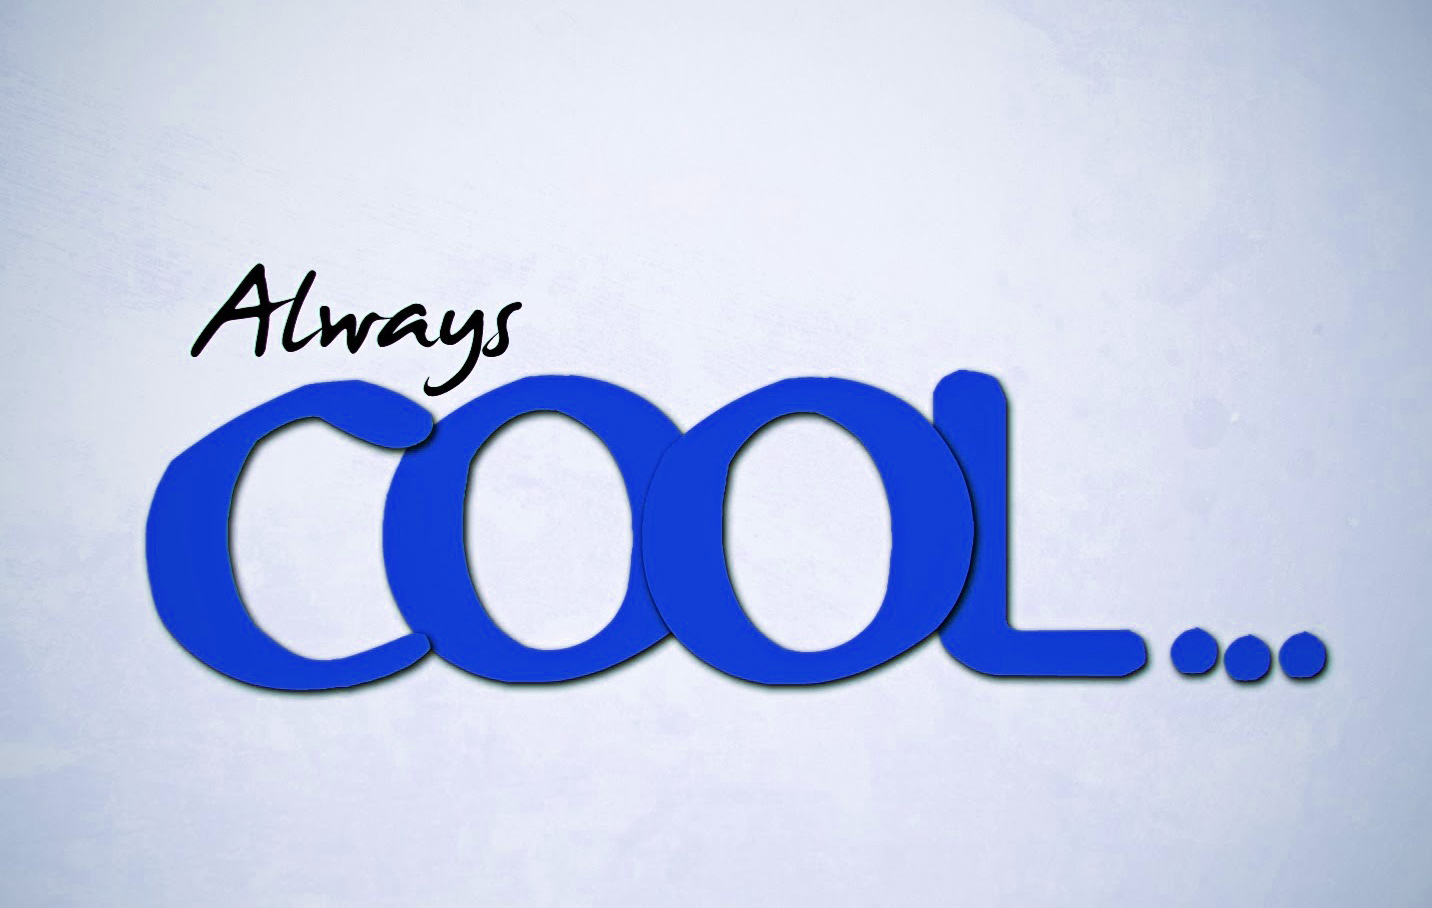 Cool Boys & Girls Whatsapp DP Profile Images Wallpaper for Facebook